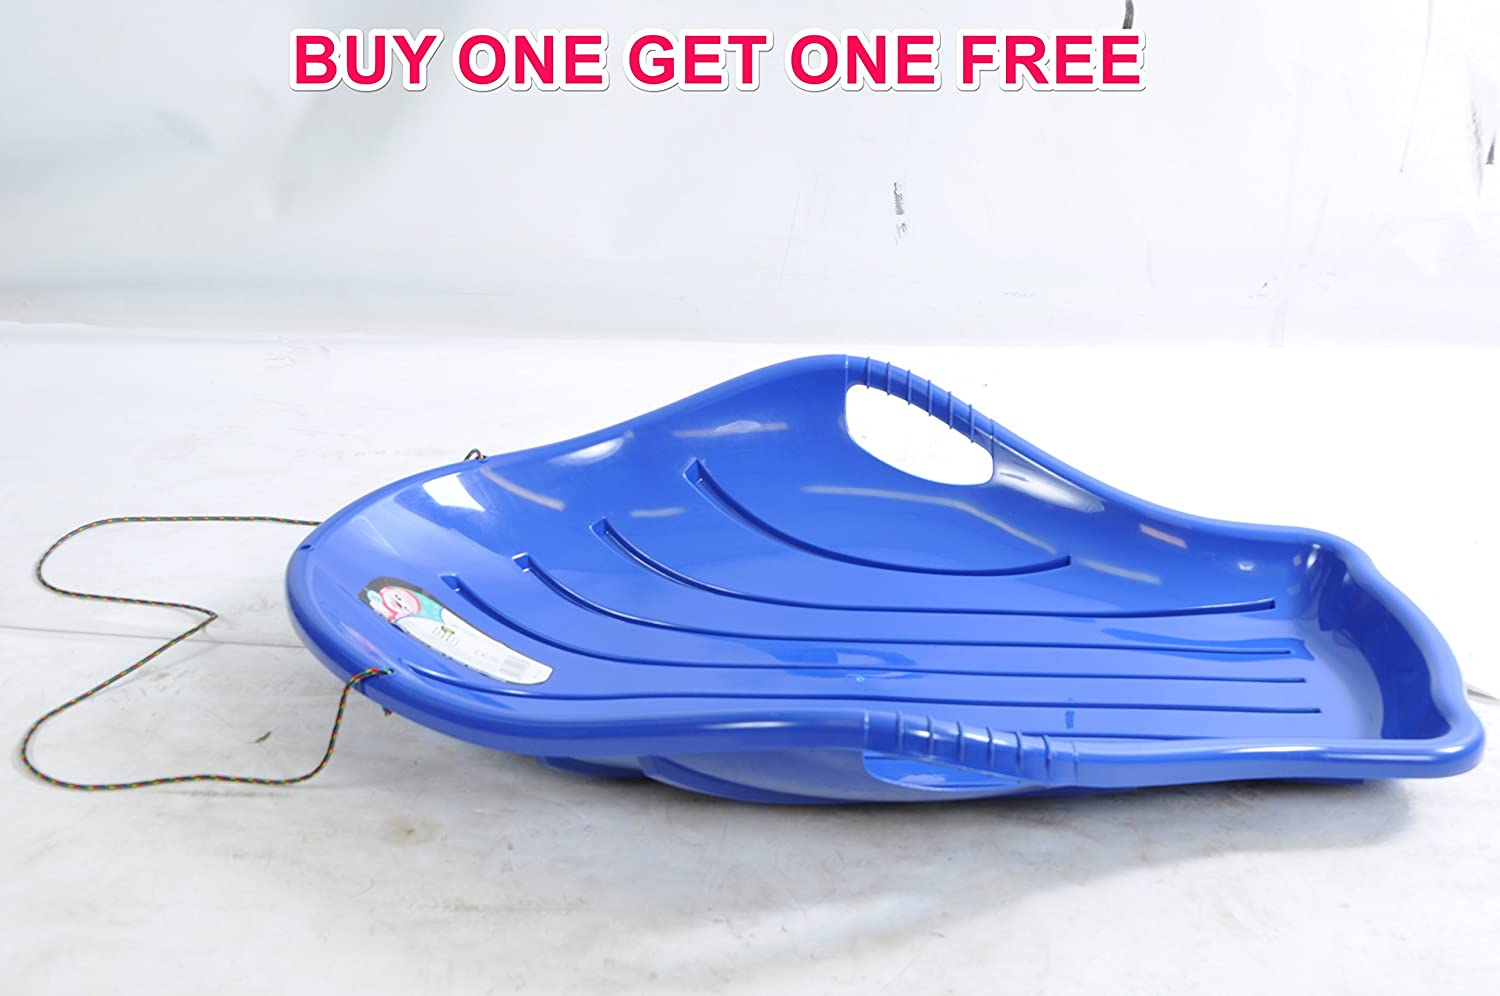 3 FEET LONG SLEDGE TOBOGGAN GREAT QUALITY SNOW SLEIGH BARGAIN GIFT BUY ONE GET ONE FREE PCM